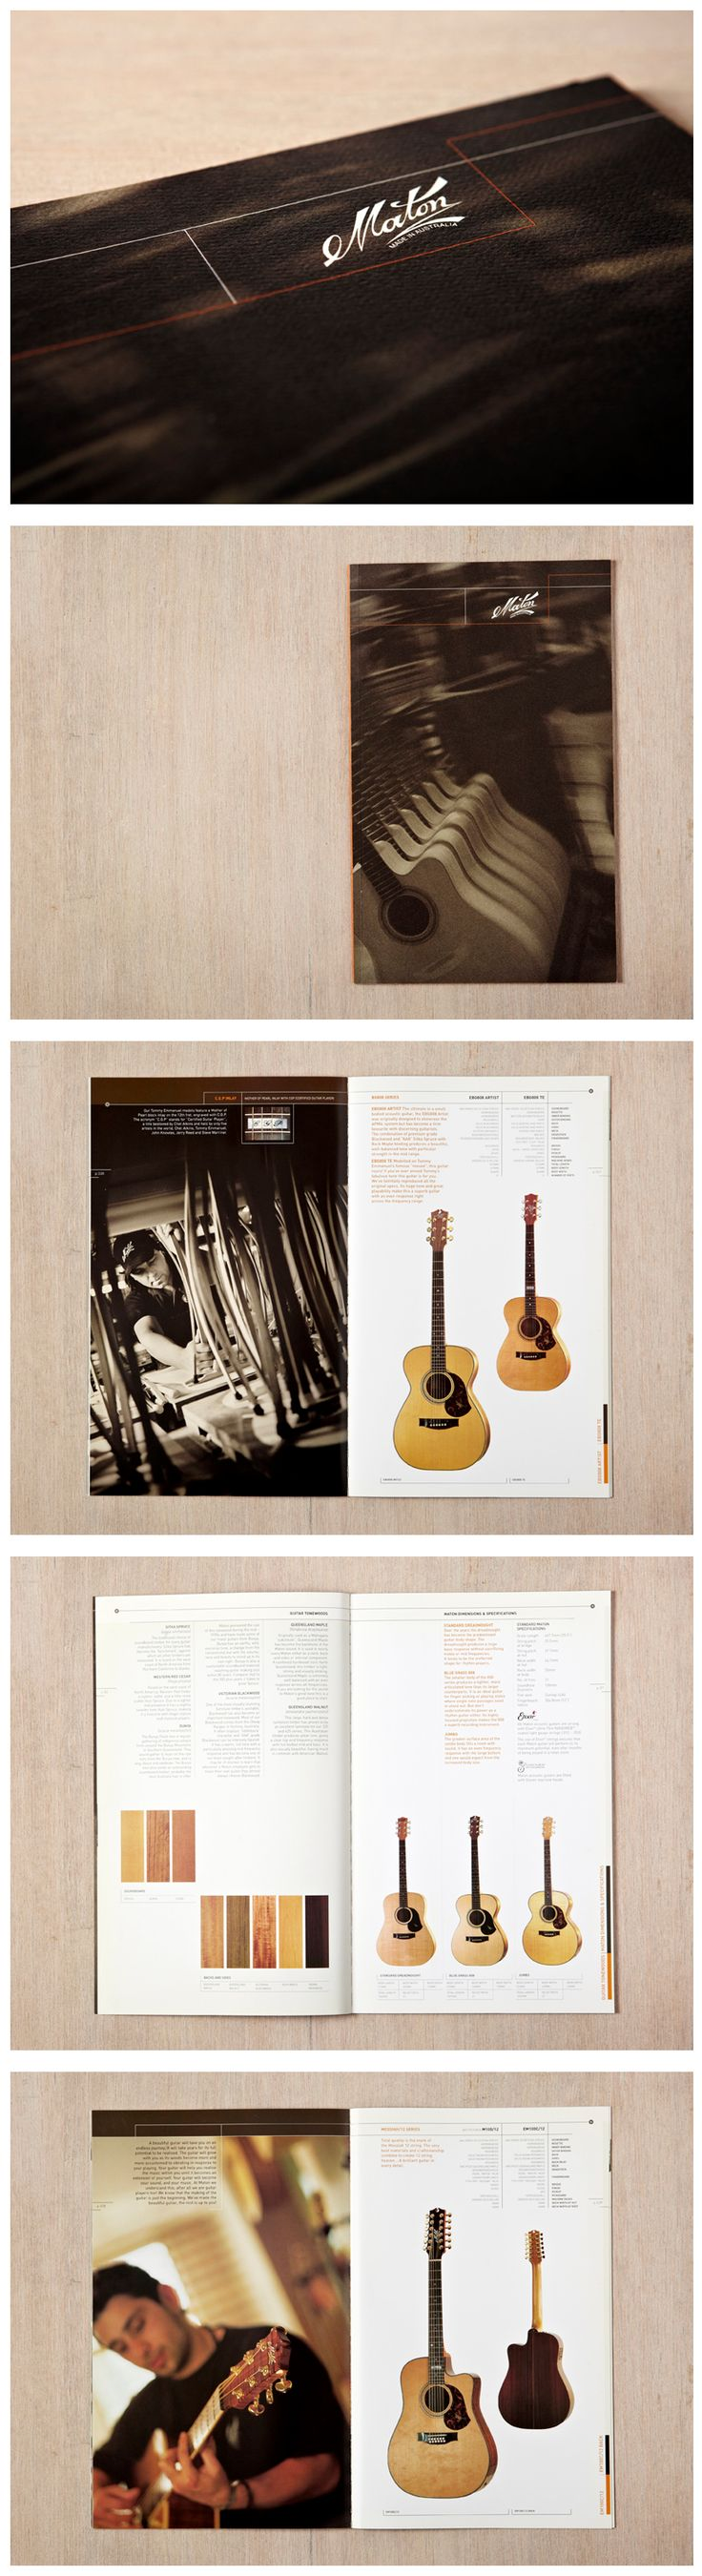 Maton Guitars ~ This musical instrument manufacturer was unable to convey the premium in their guitars in an increasingly global market. Liquid recast Maton's brand to exude warmth and inject a craftsman's skill and experience into their brand personality. We then designed a new catalogue which promoted Maton Guitars traditions of quality, attention to detail and innovation and positioned their guitars as a collector's item.